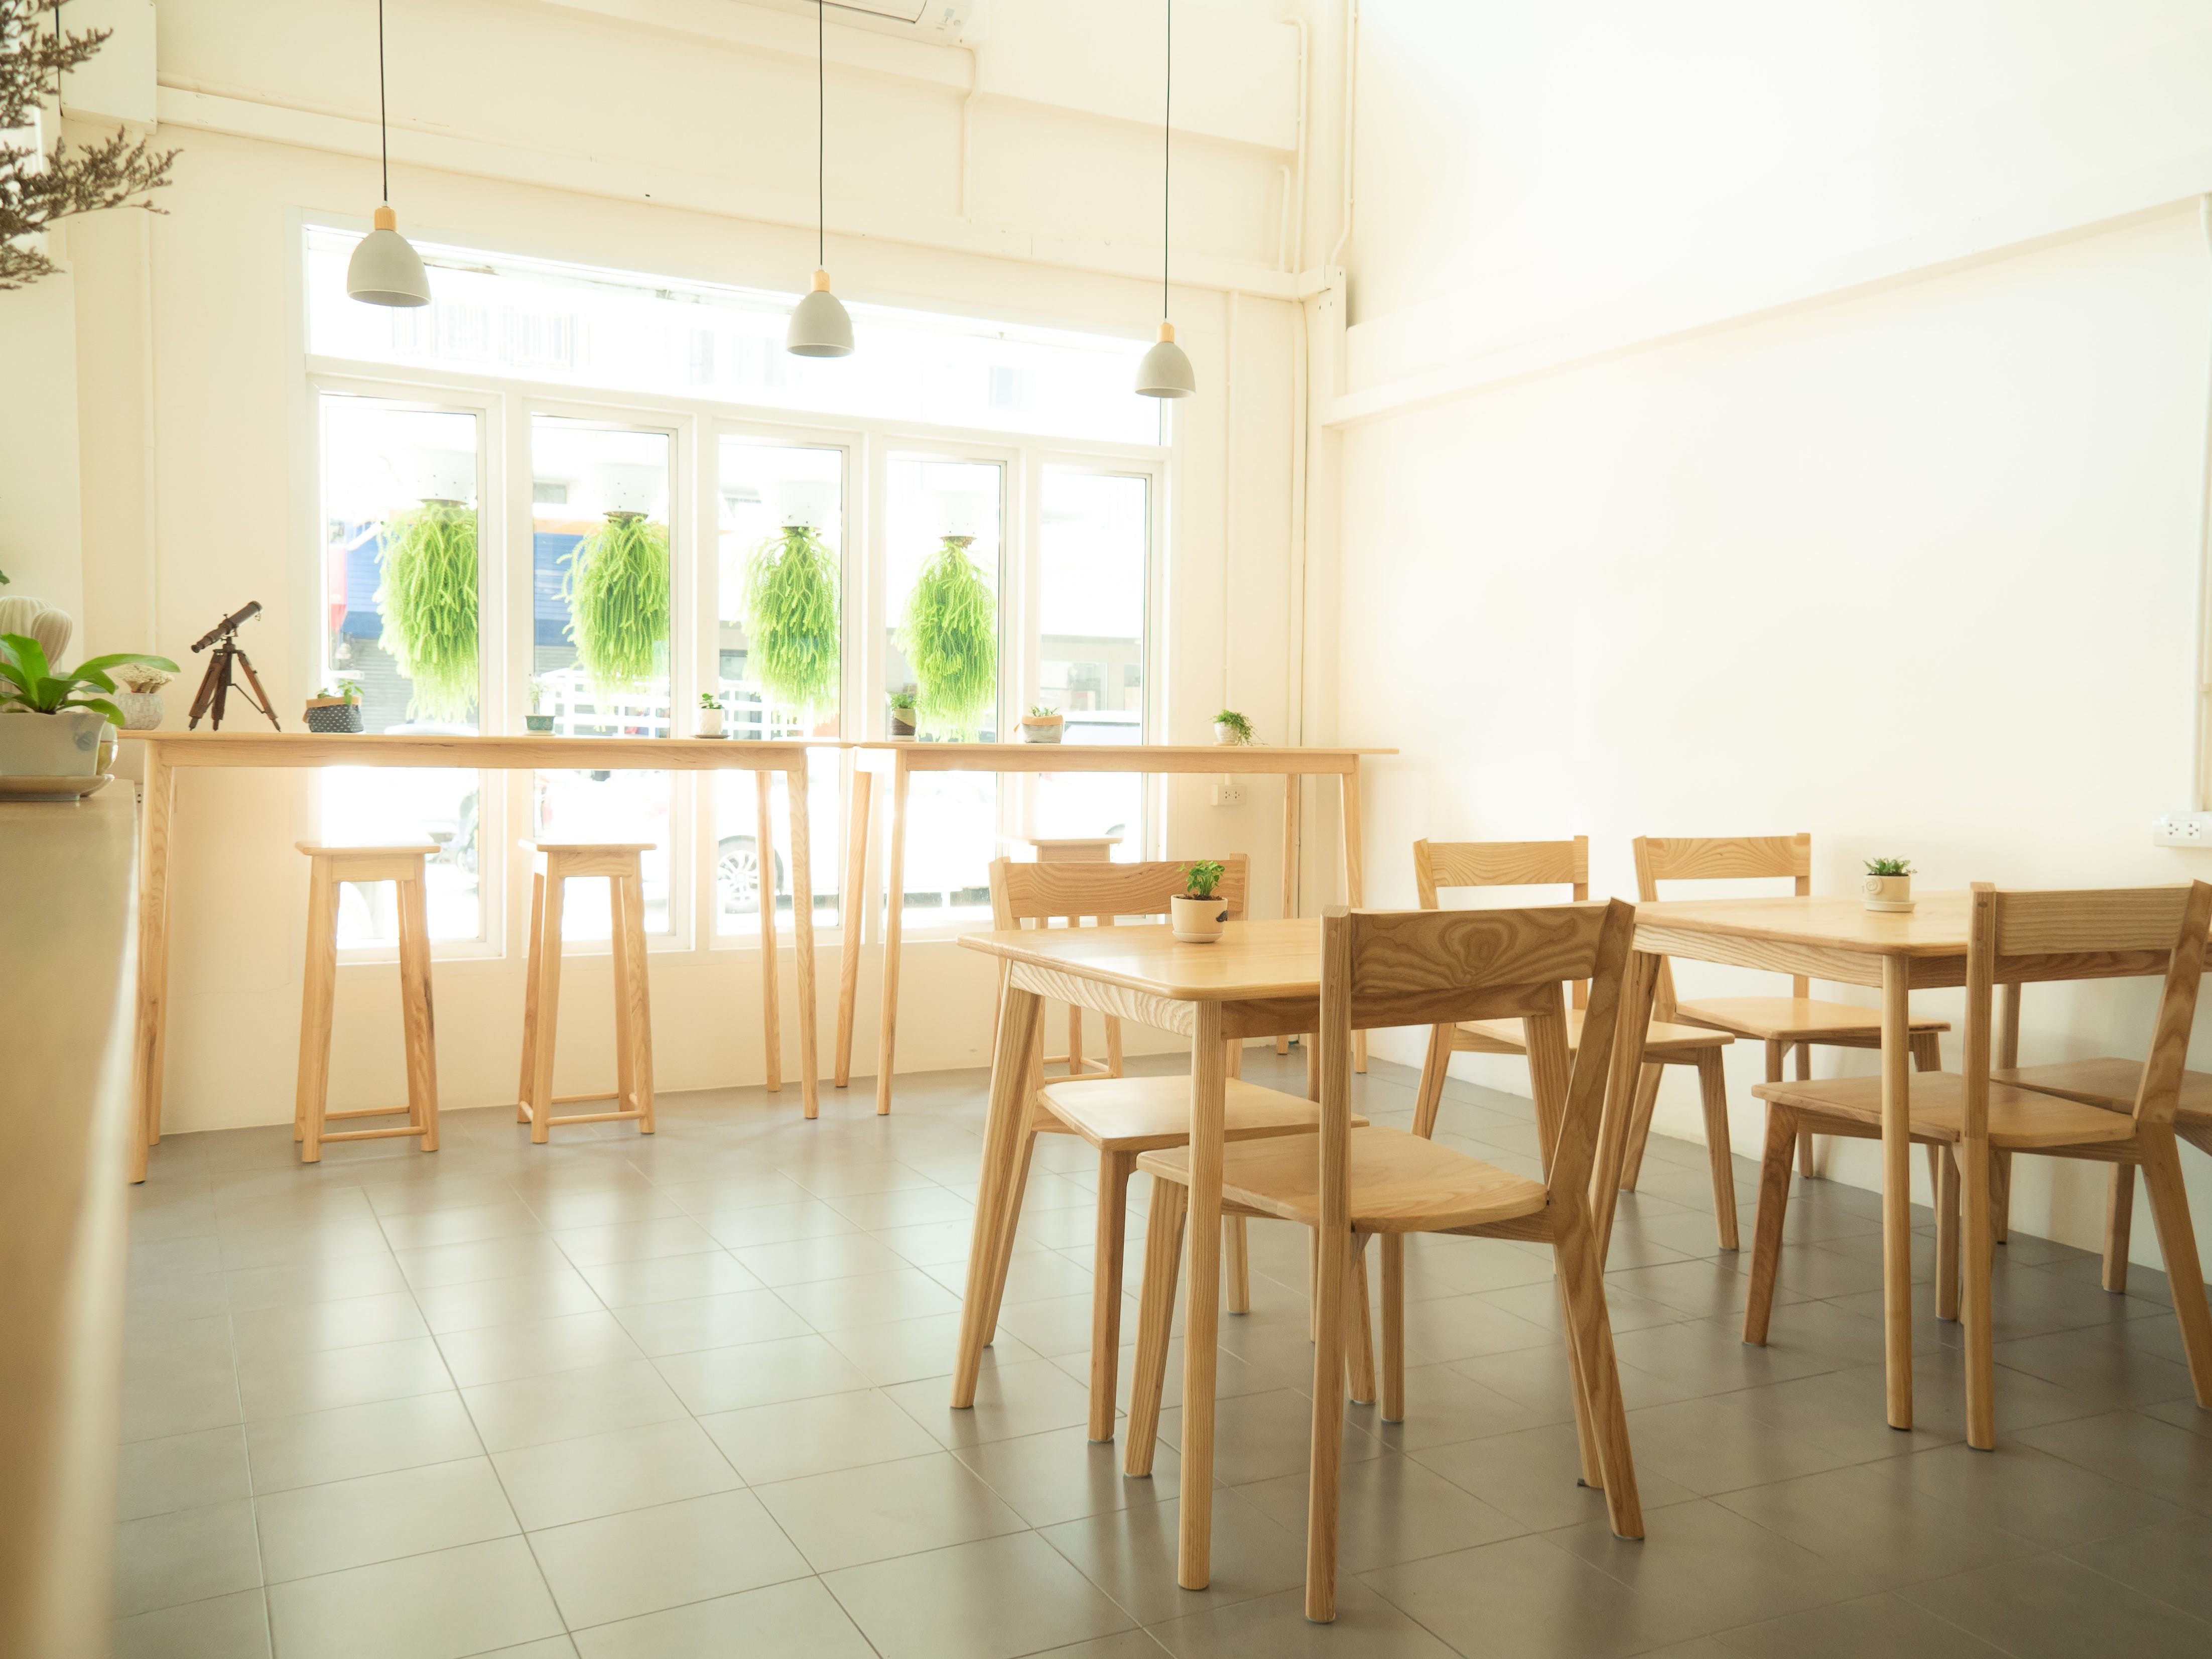 Free stock photo of coffee shop, interior, shop windows, wooden chair